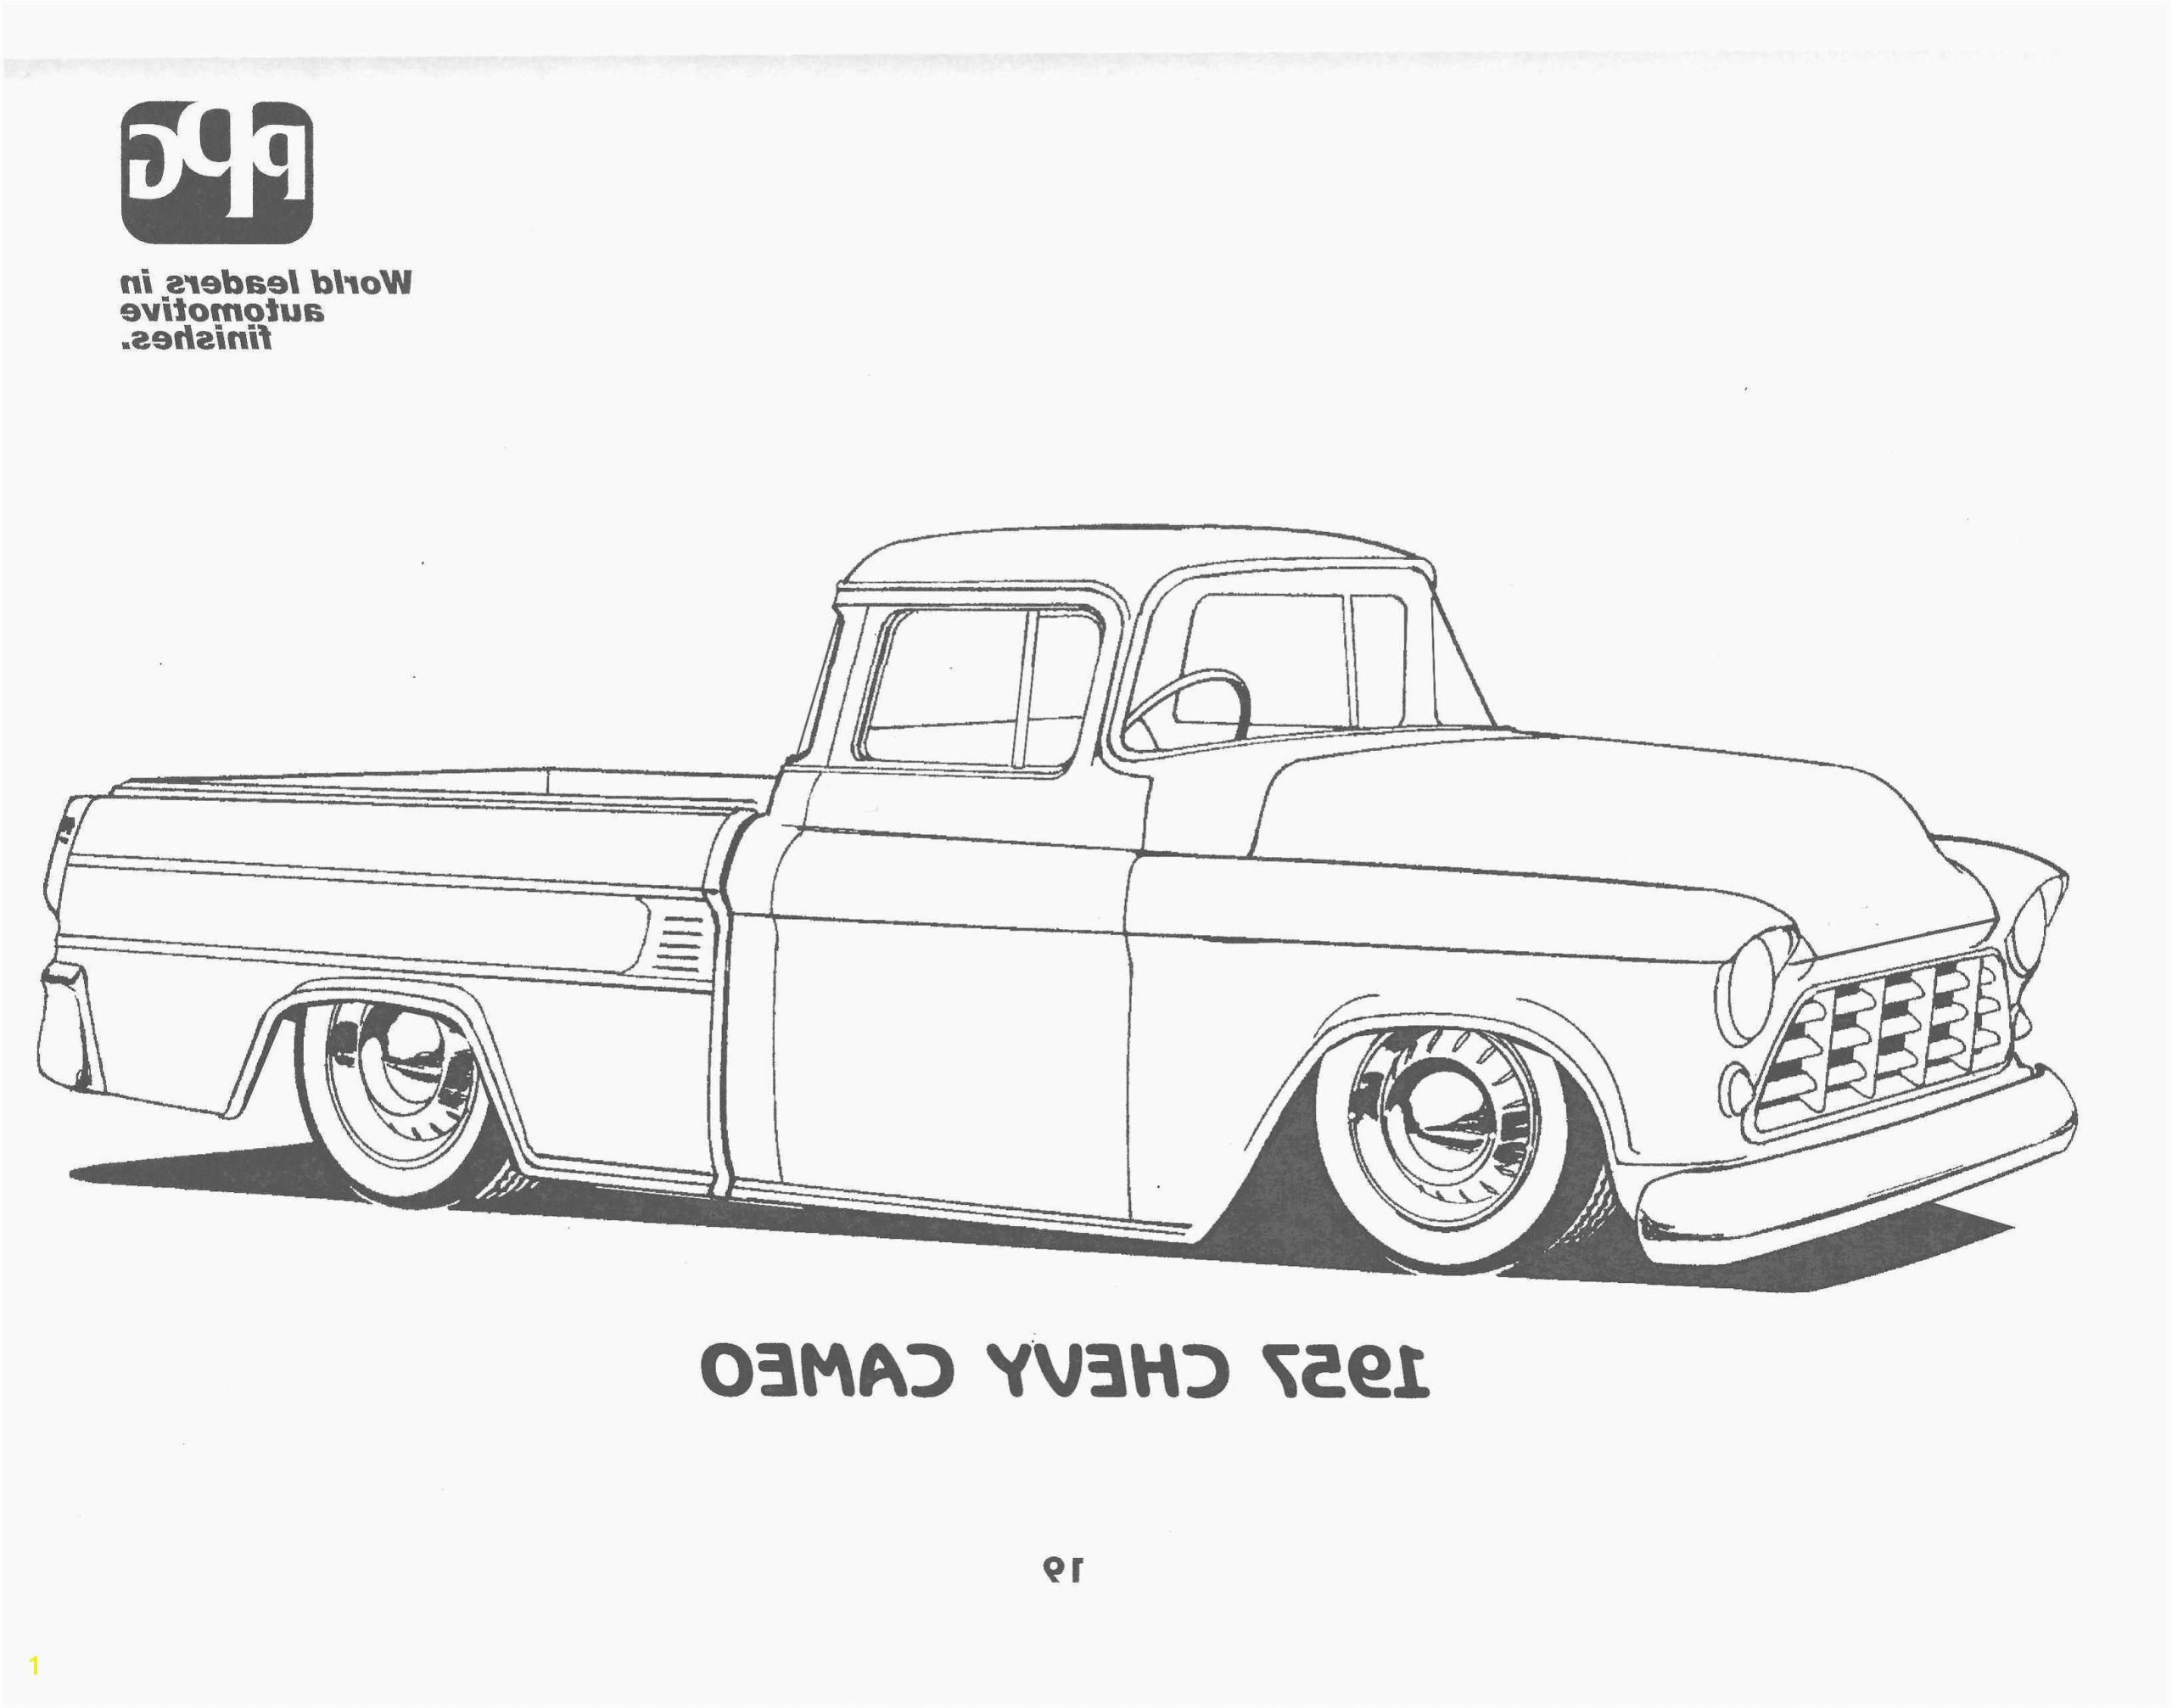 car coloring page to print best of photography inspirational truck and car coloring pages fym of car coloring page to print